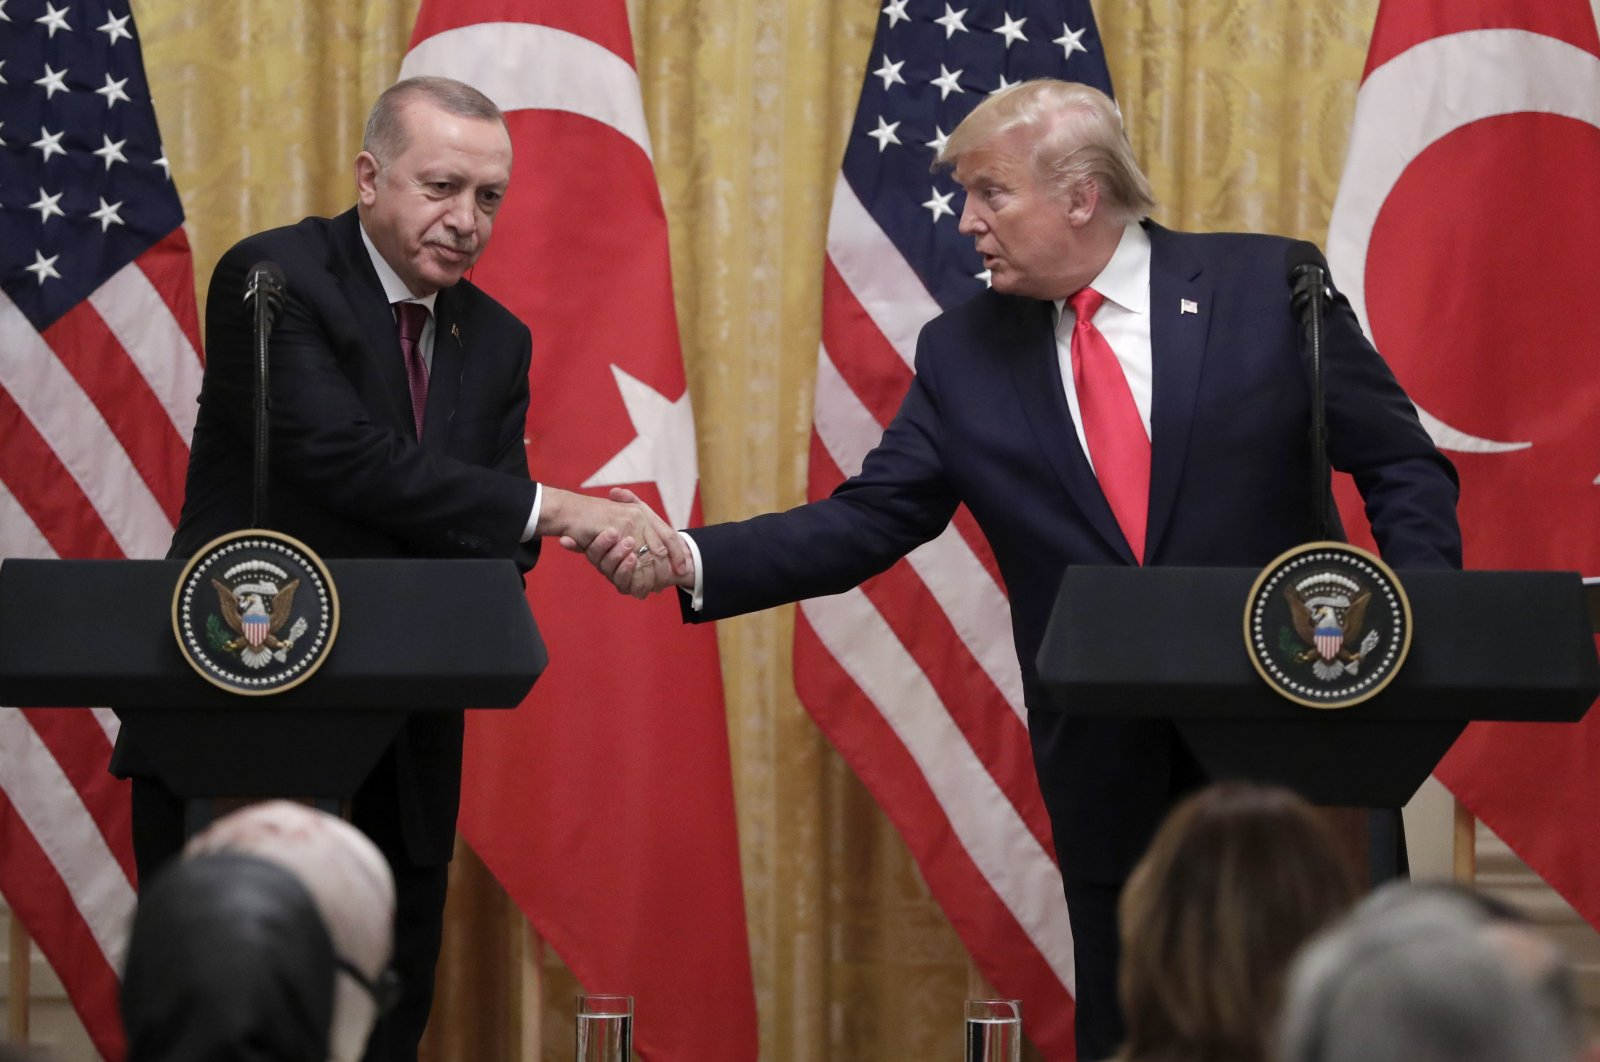 U.S. President Donald Trump shakes hands with President Recep Tayyip Erdoğan during a news conference in the East Room of the White House, Washington, D.C., Nov. 13, 2019. (AP Photo)